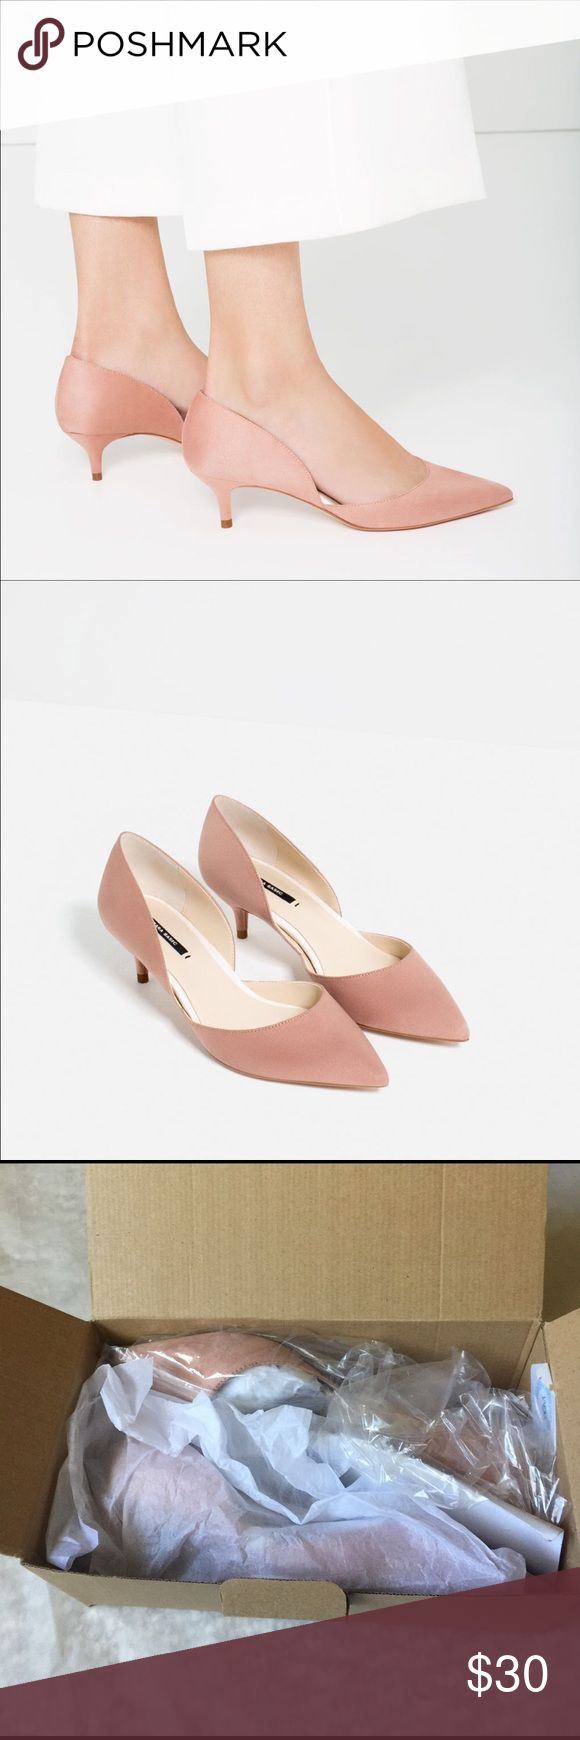 NWT ZARA BLUSH PINK KITTEN HEELS Brand new with tags! New, never worn. Sold out online! Zara Shoes Heels